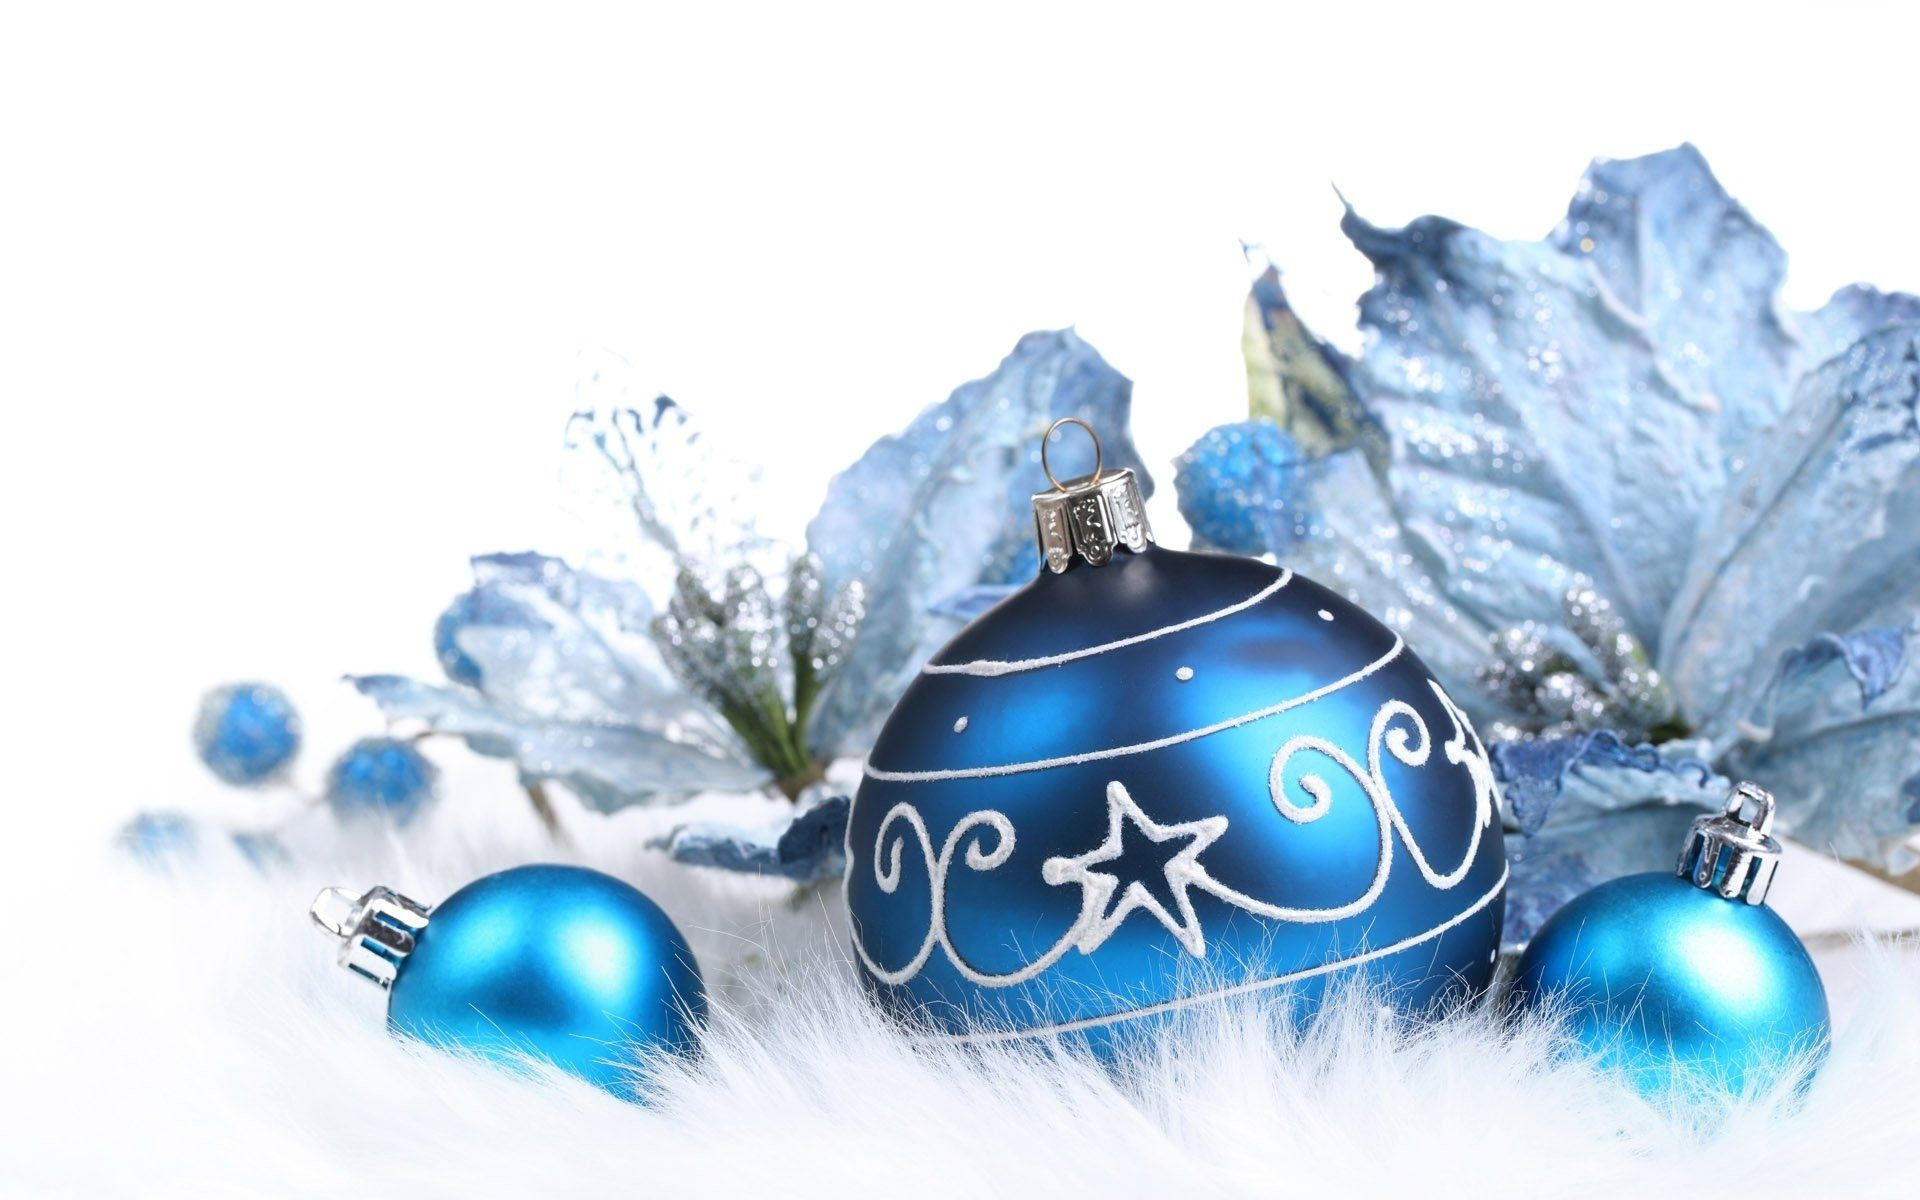 White christmas background download free hd wallpapers for Natale immagini per desktop